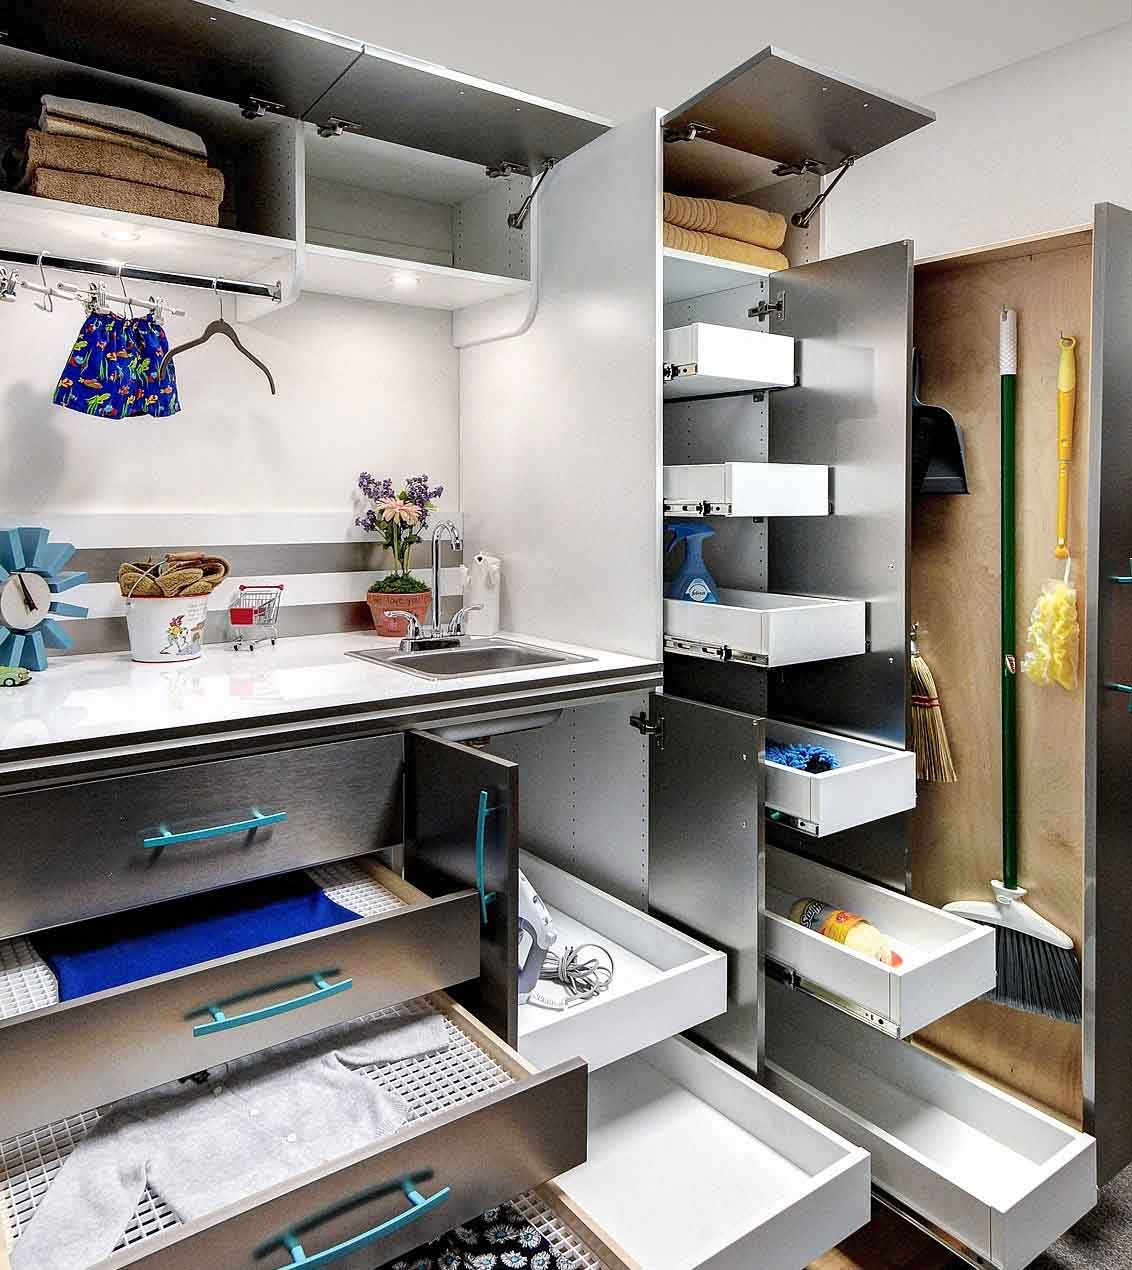 Organizing Your Home With These Creative Ideas